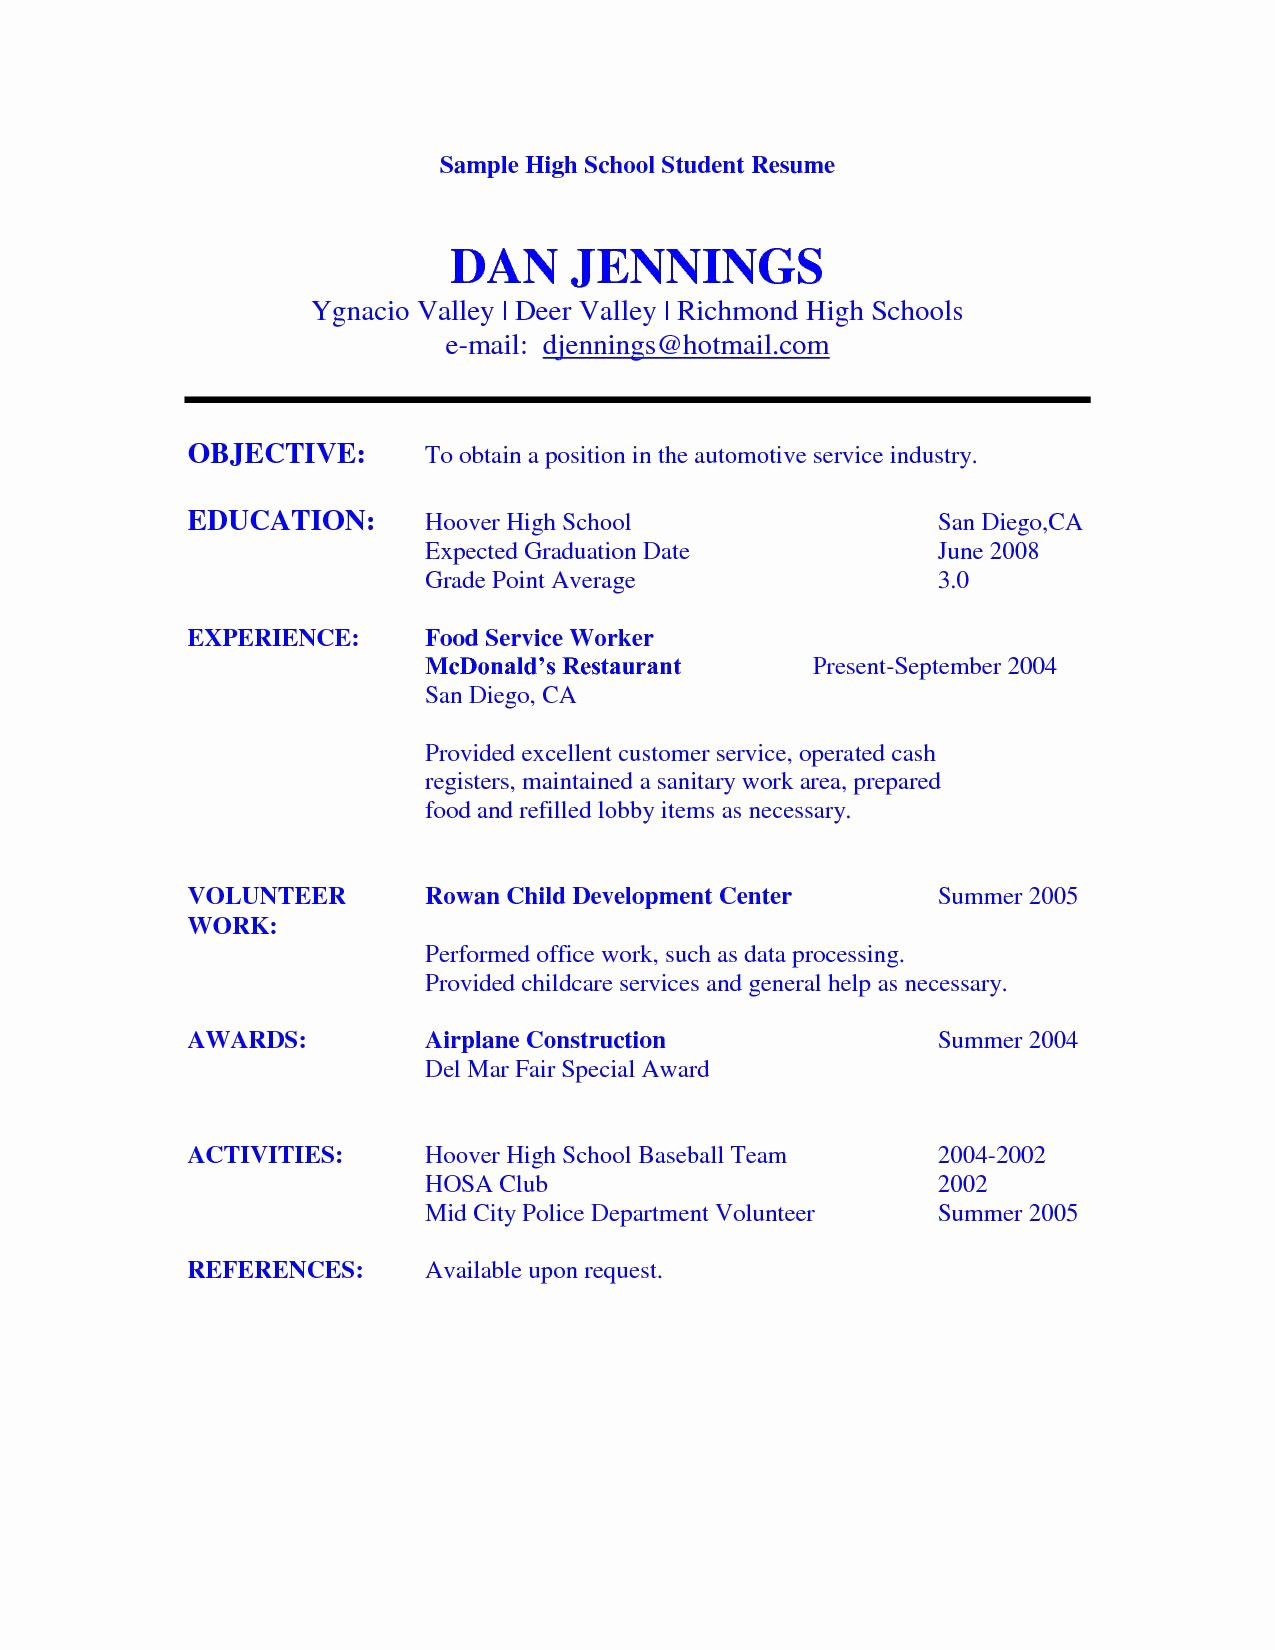 High School Graduate Resume Template Luxury High School Student Resume Objective Examples